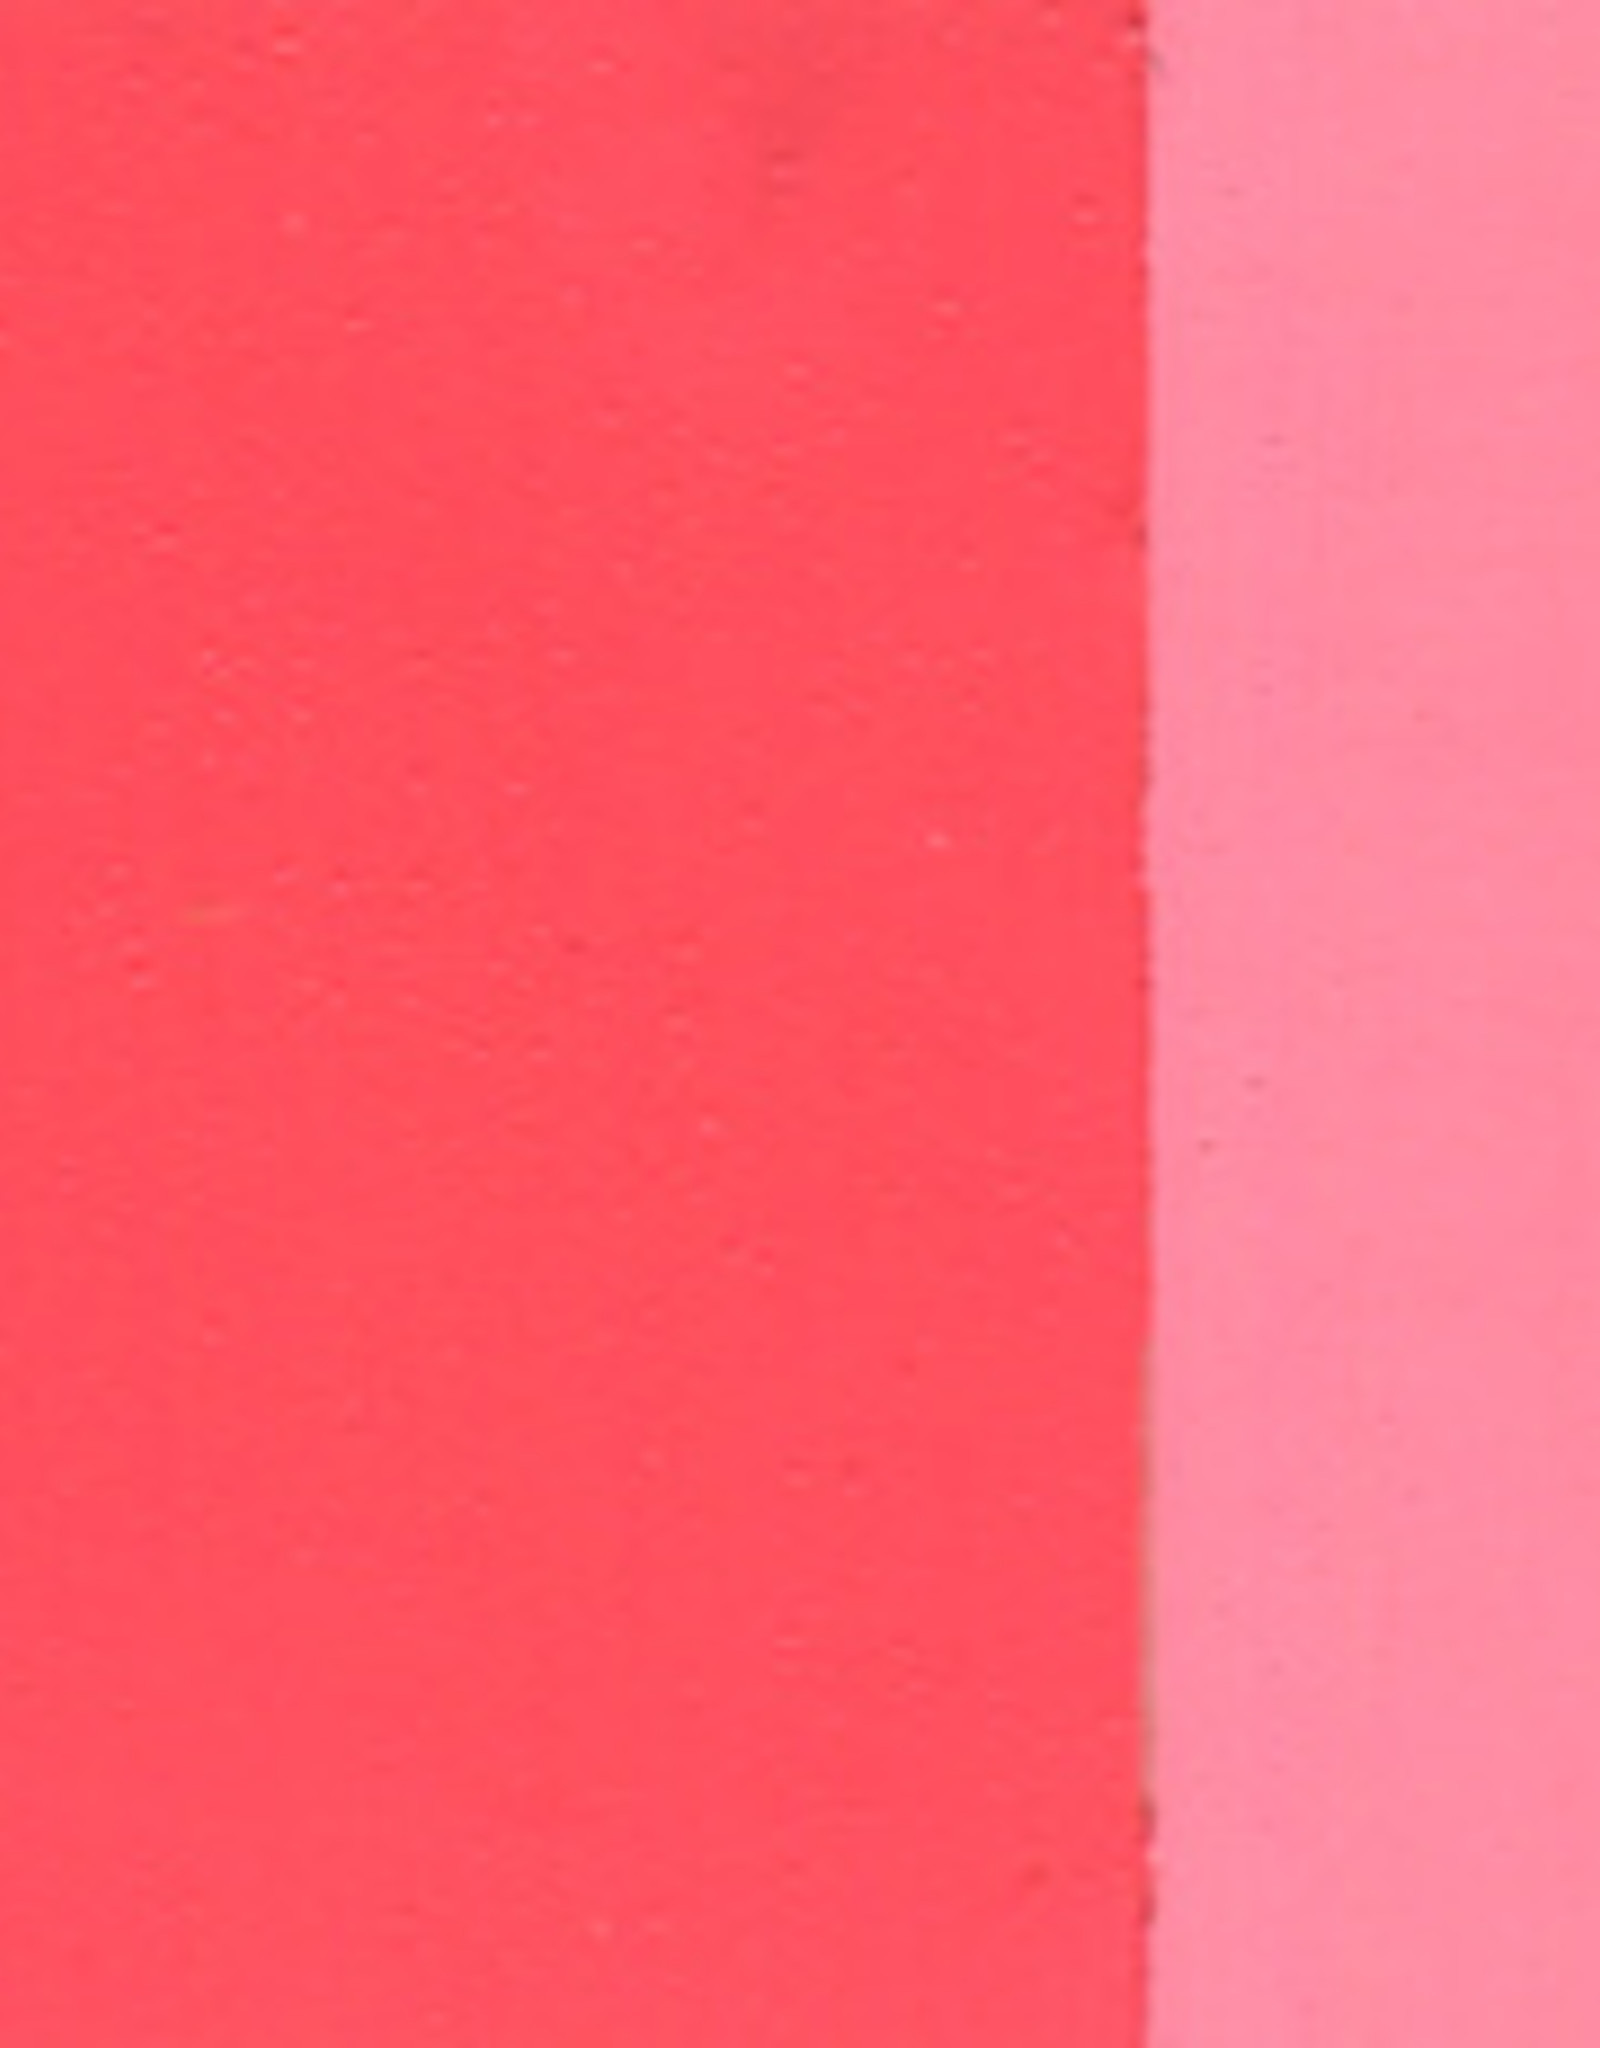 Holbein Oil Color Series B 40 ml Brilliant Pink 40 ml